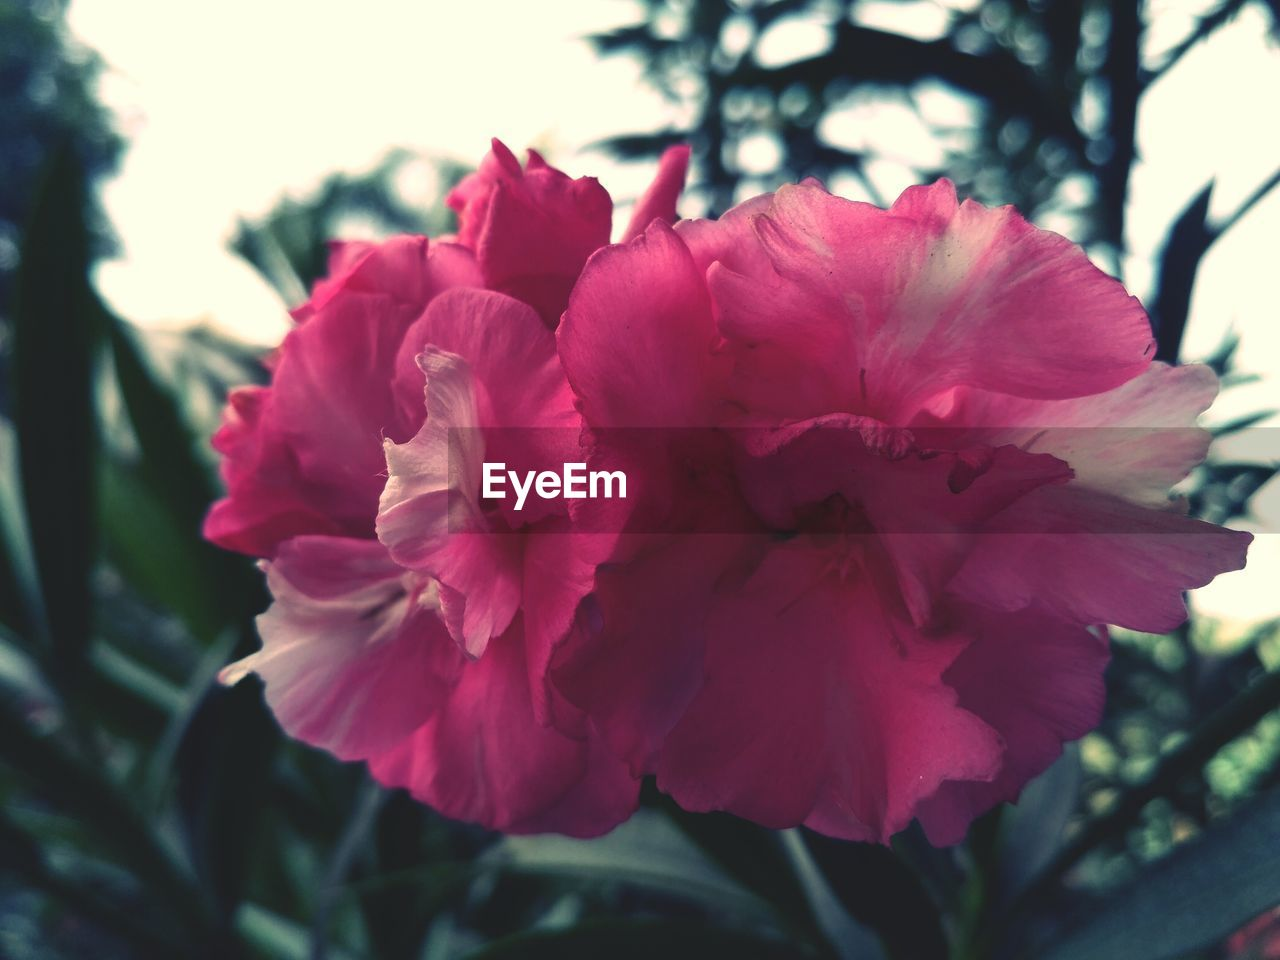 flowering plant, plant, flower, beauty in nature, vulnerability, fragility, petal, freshness, growth, close-up, inflorescence, flower head, pink color, focus on foreground, nature, day, no people, outdoors, red, blossom